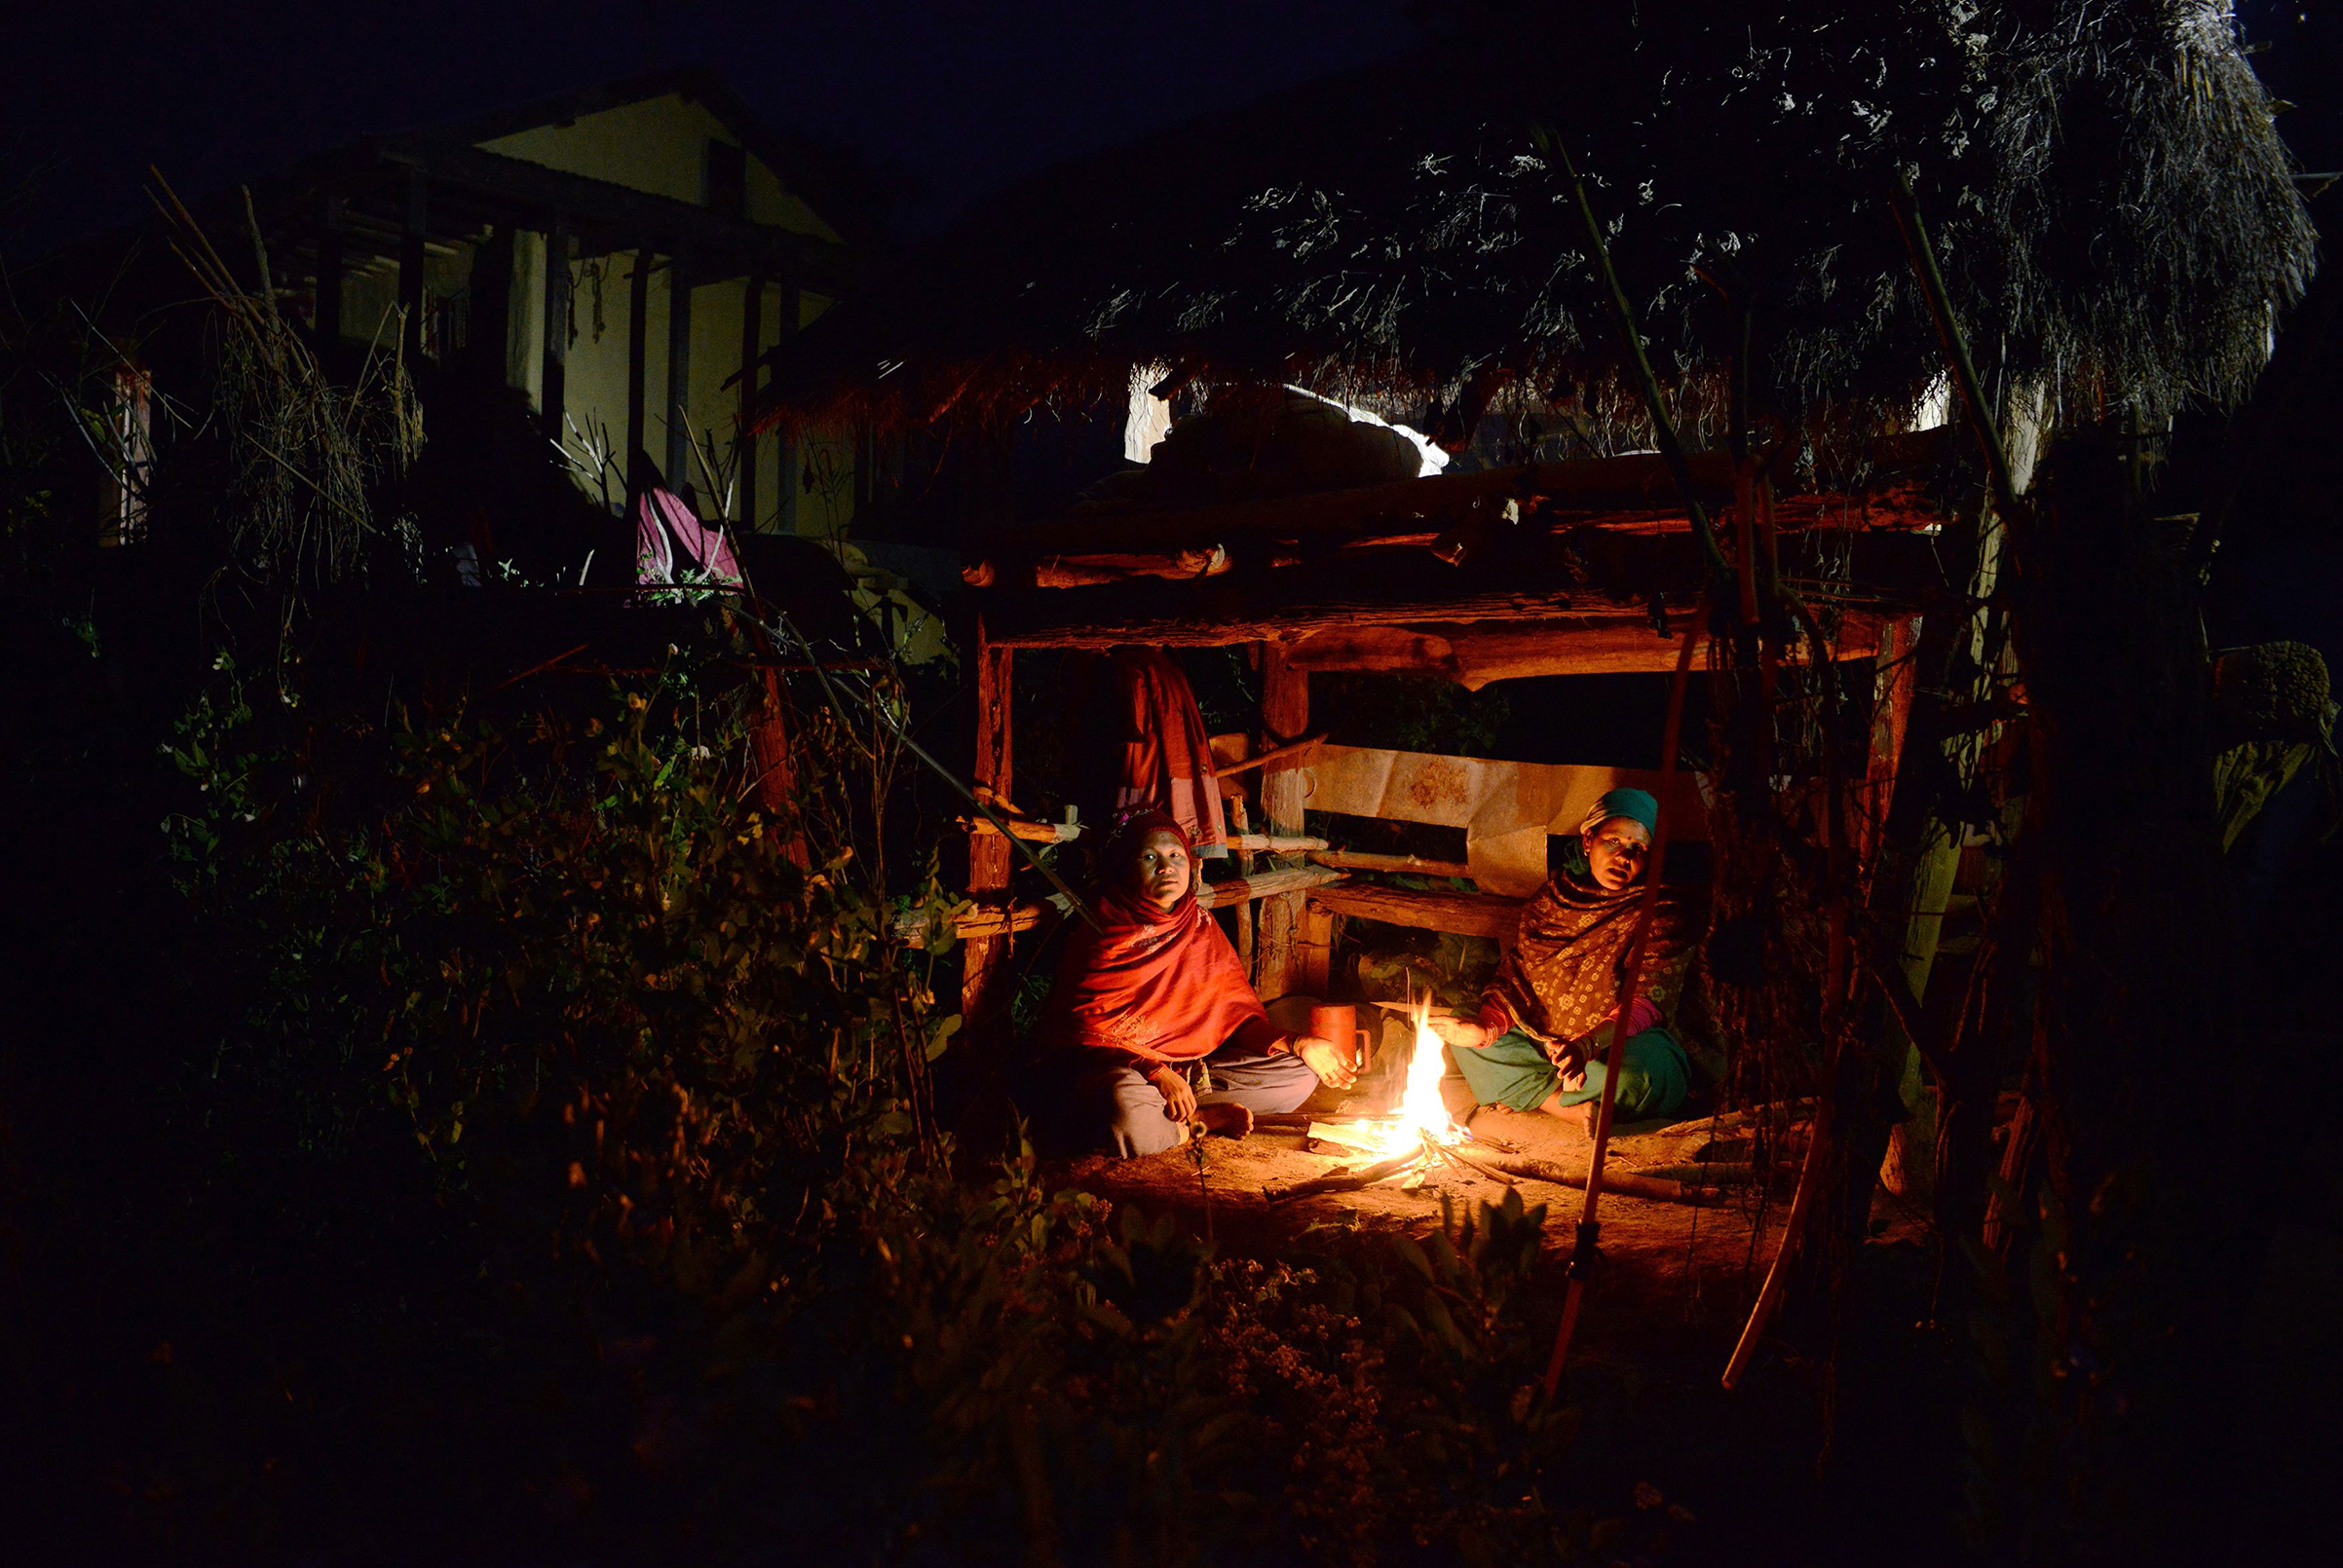 Nepalese women Pabitra Giri (L) and Yum Kumari Giri (R) sit by a fire as they live in a Chhaupadi hut during their menstruation period in Surkhet District, some 520km west of Kathmandu on Feb. 3, 2017.